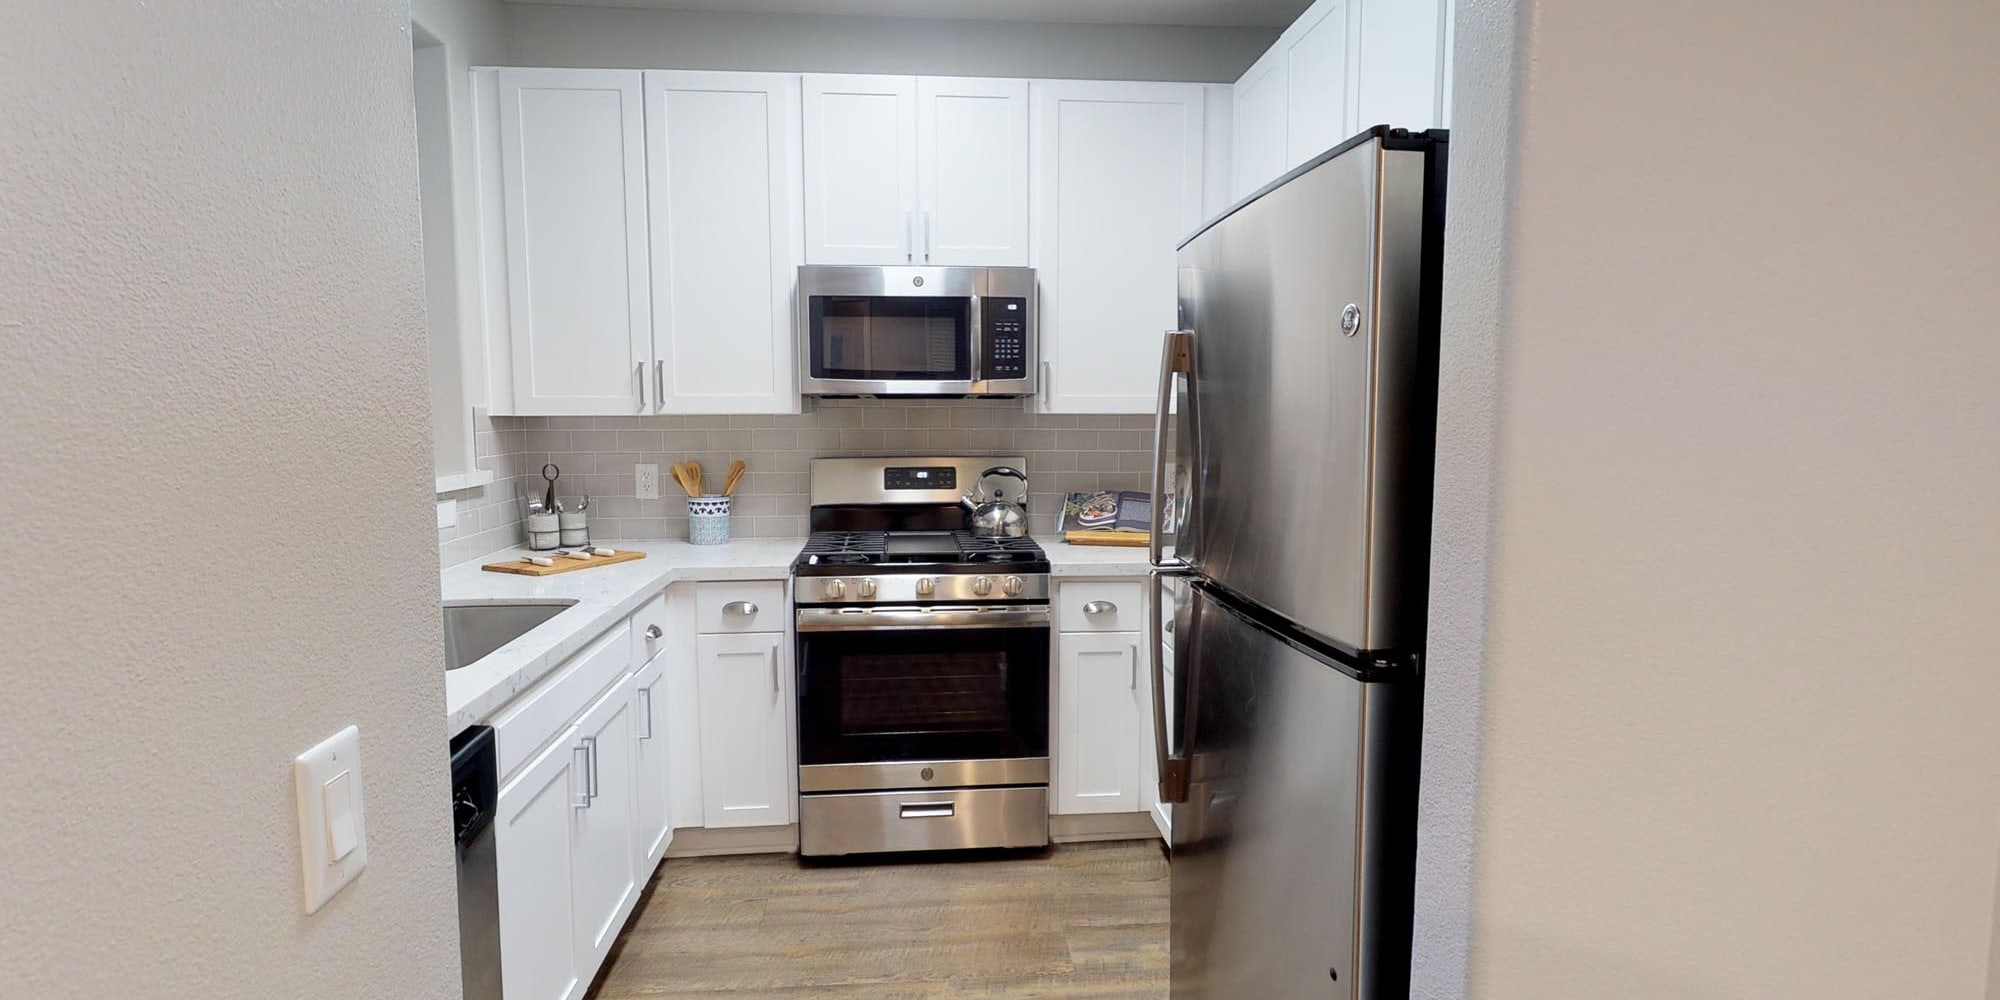 Stainless-steel appliances in a model home's kitchen at Mission Hills in Camarillo, California